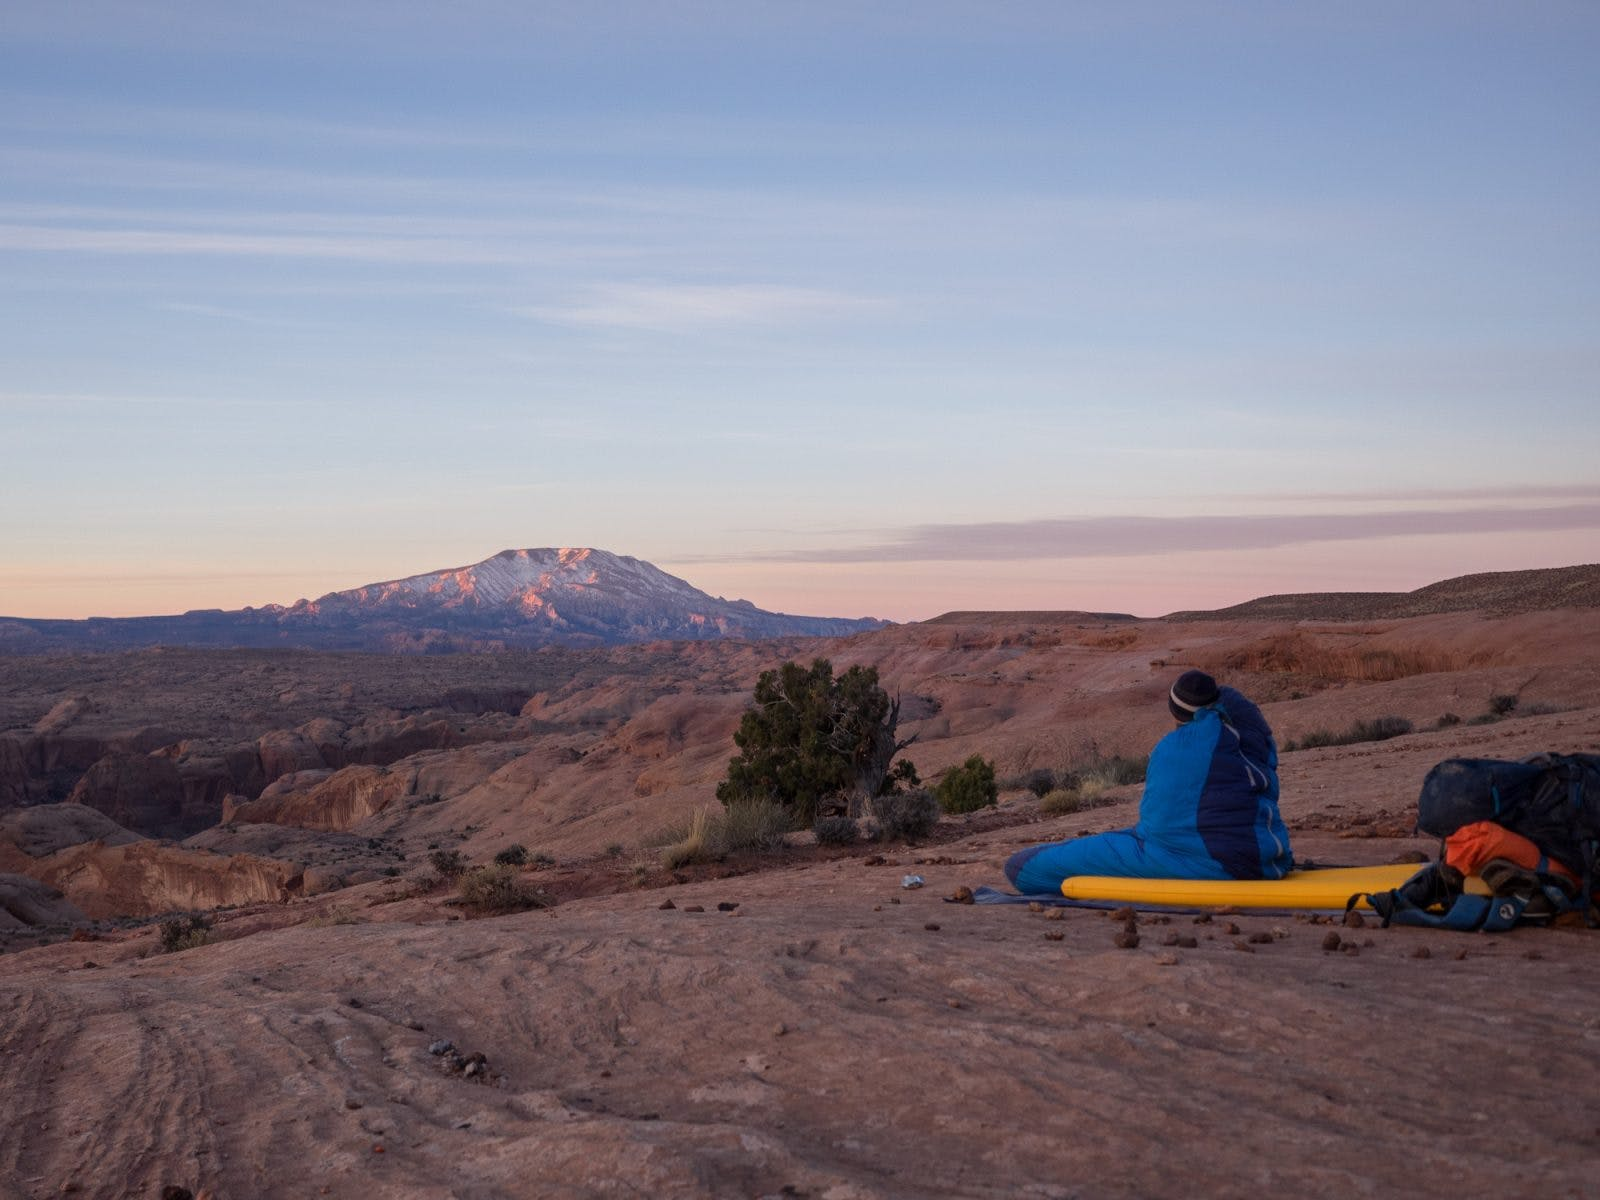 On our third day of hiking we awoke to view Navajo Mountain lit up in spectacular fashion.